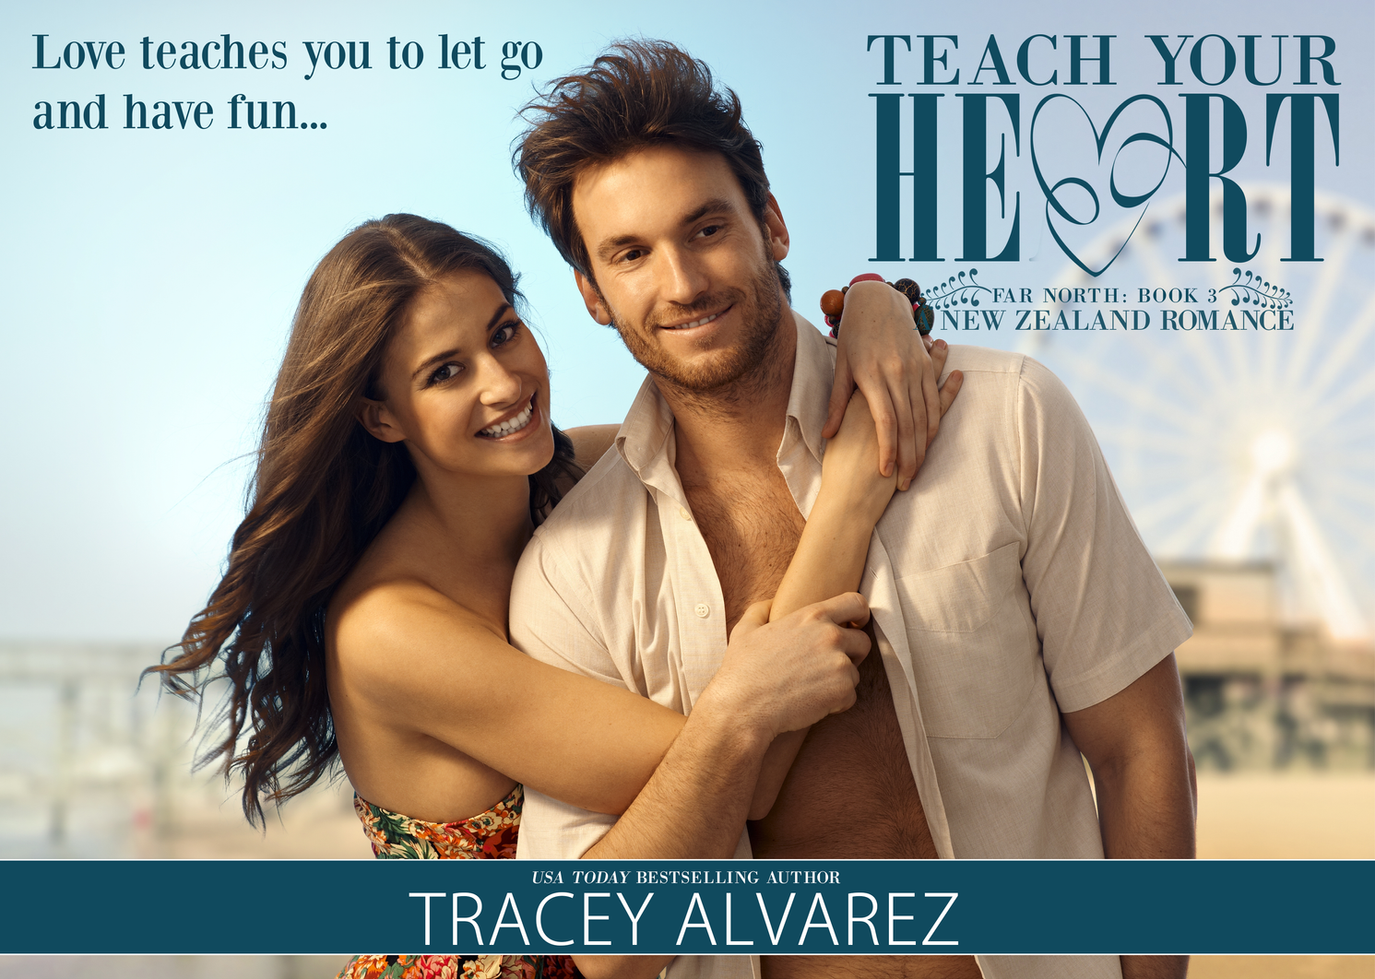 Teach Your Heart Quote2.png